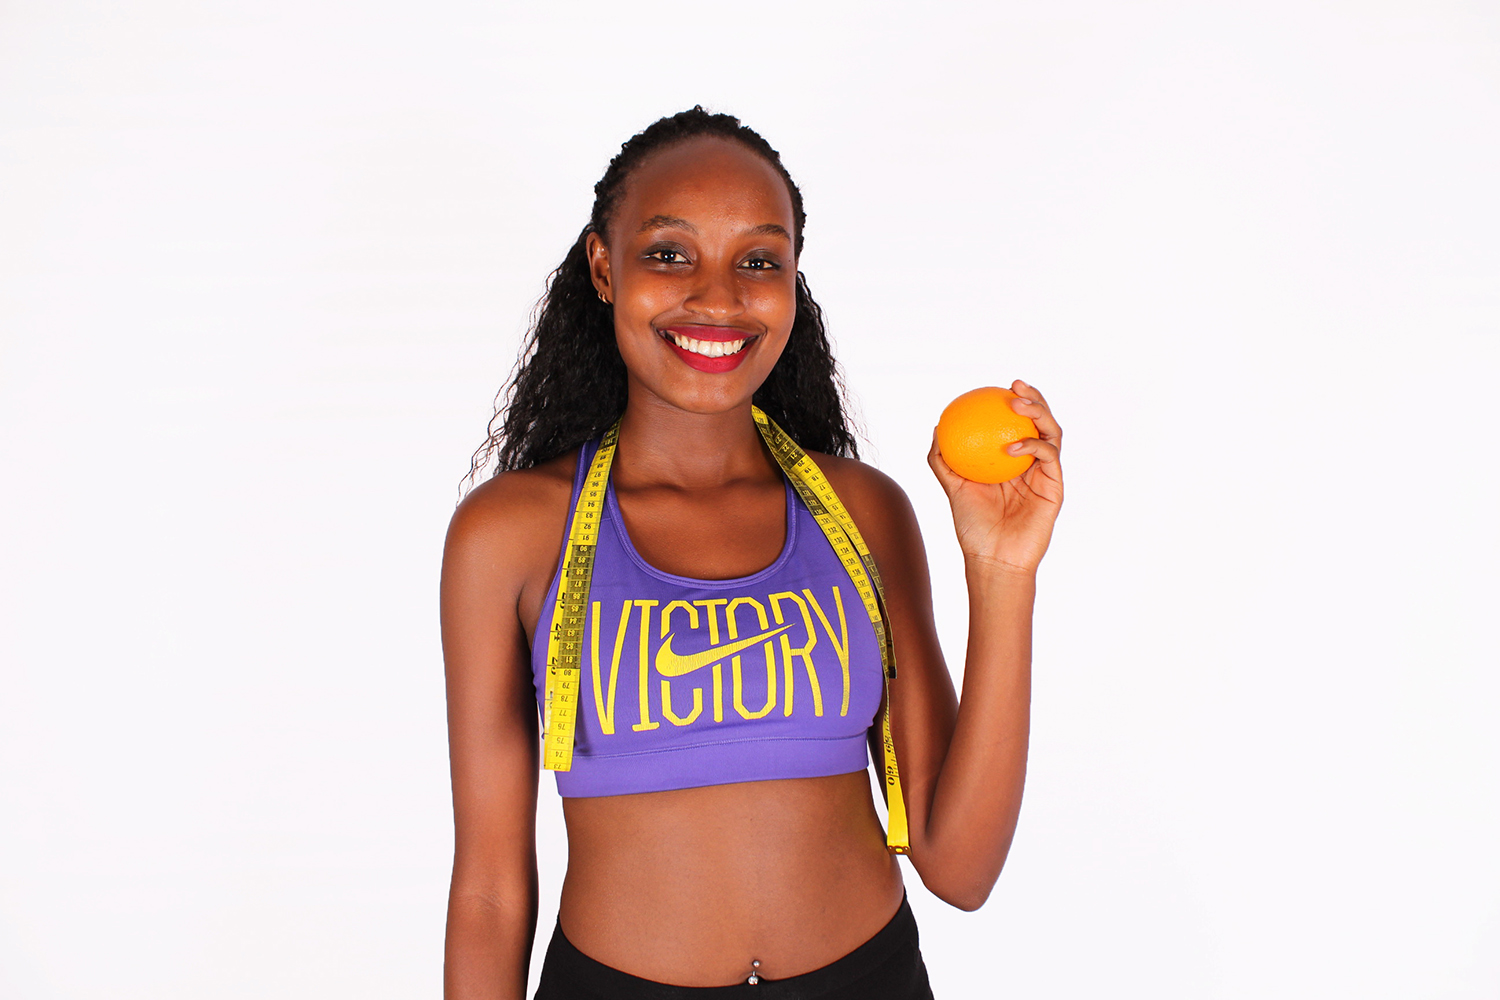 Dieting woman with orange fruit and tape measure